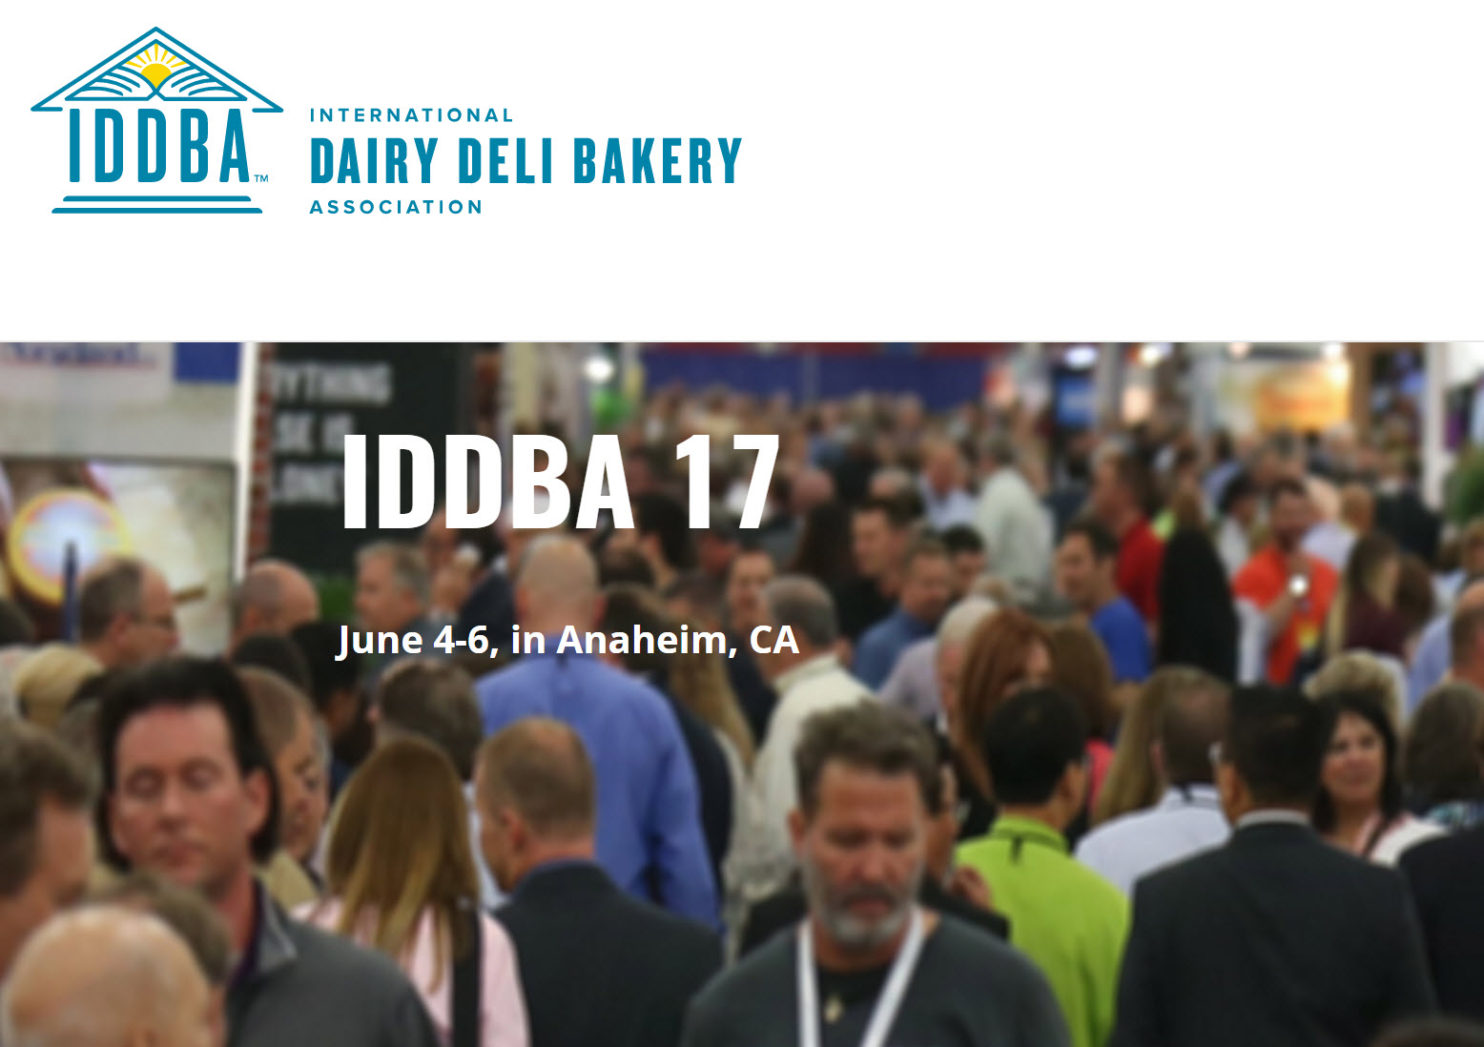 American Sprinkle will be at the upcoming IDDBA 17 event June 4-6, in Anaheim, CA. Come see us!